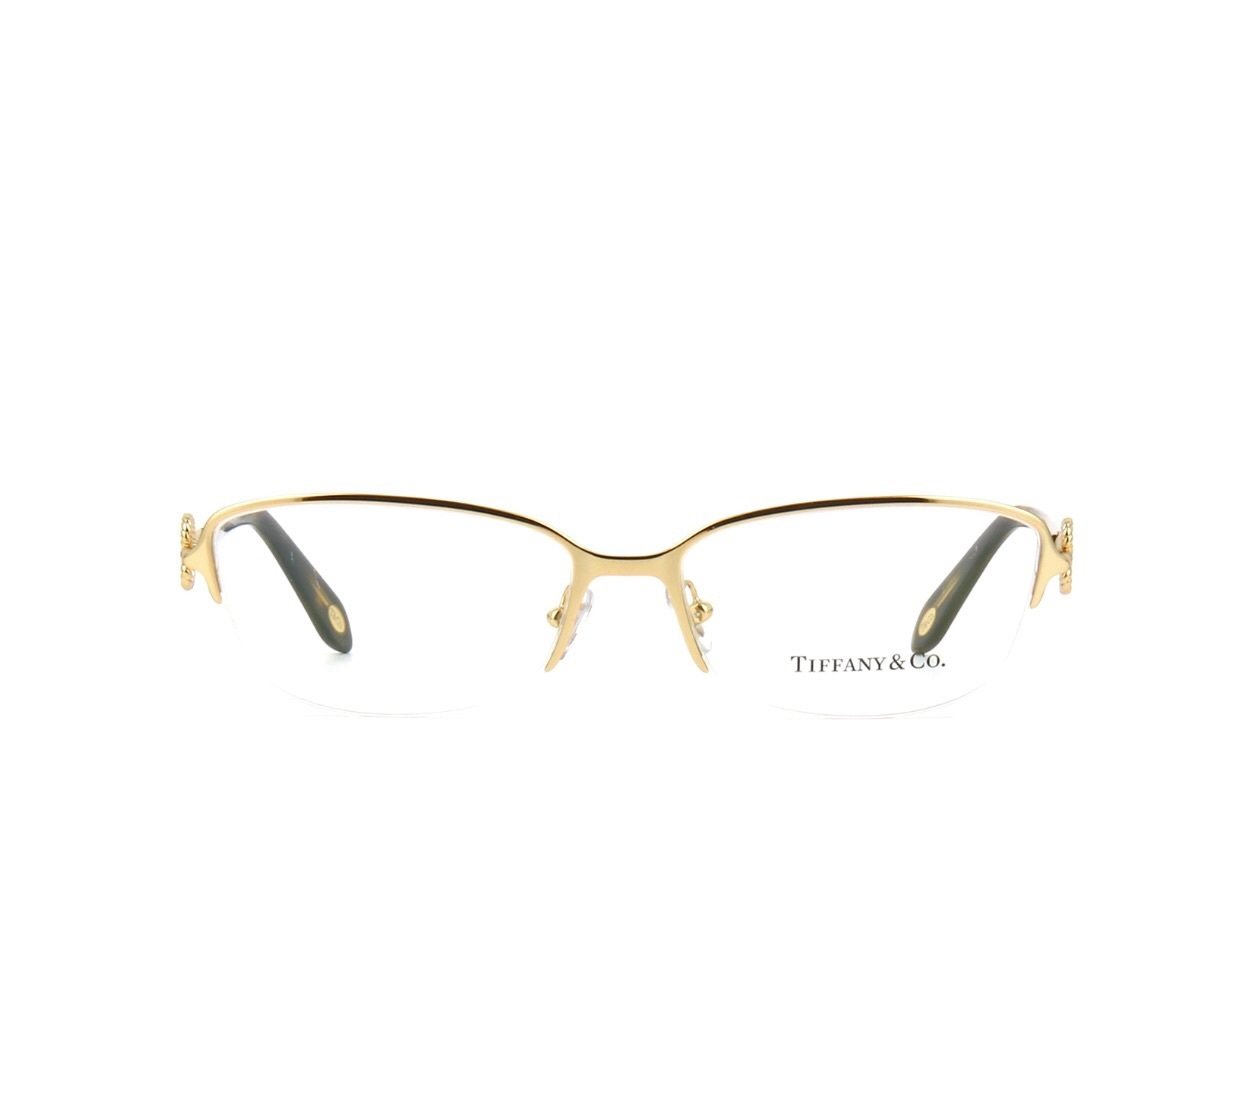 Rimless Gold Eyeglass Frames : New Authentic TF1106 6021 Tiffany & Co. Semi-Rimless ...